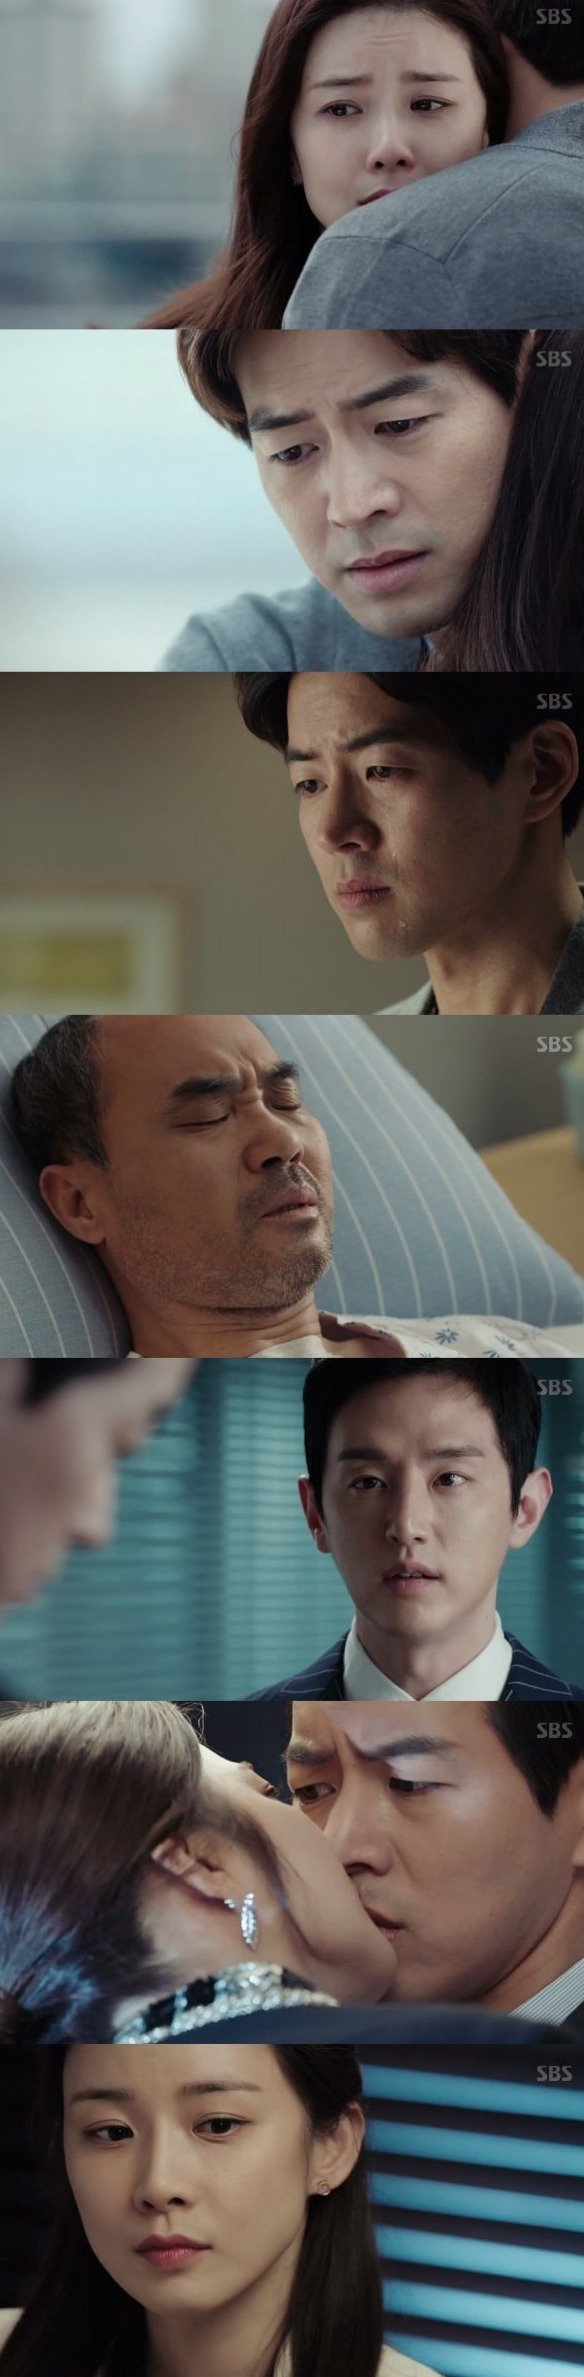 [Spoiler] Added episode 7 captures for the Korean drama 'Whisper'